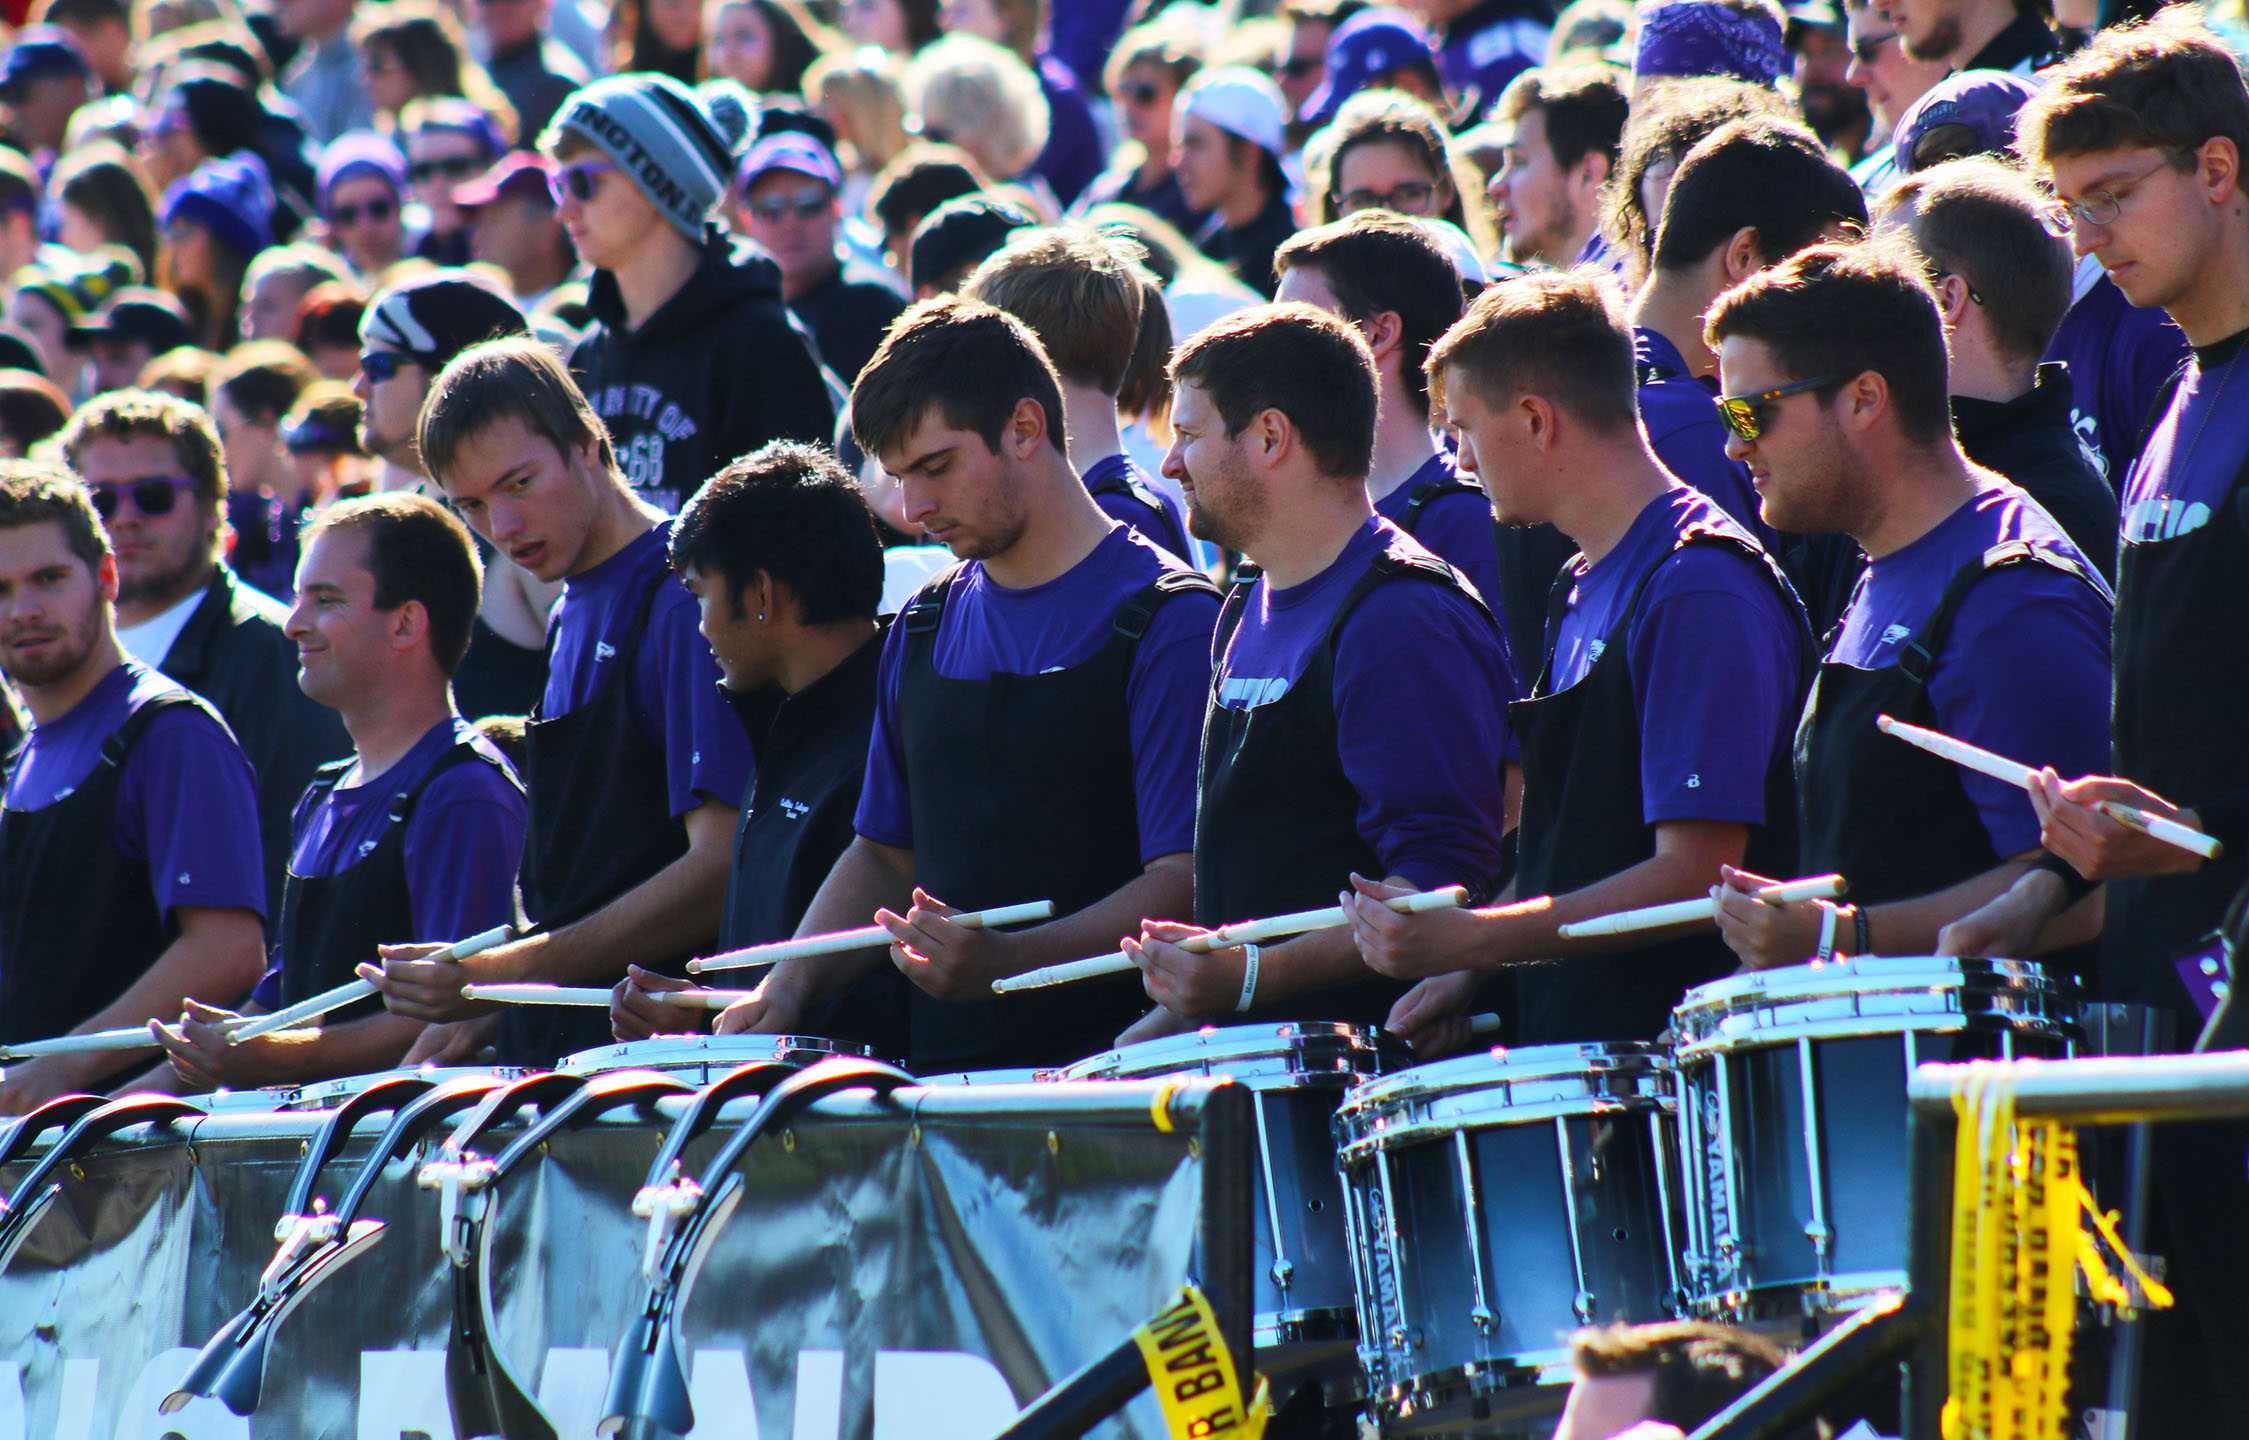 The UW-W Snare line plays to cheer on the Warhawks at the Homecoming football game on Sat. Oct. 22. The Line plays on Yamaha drums, the company who endorsed them for their level of excellence.